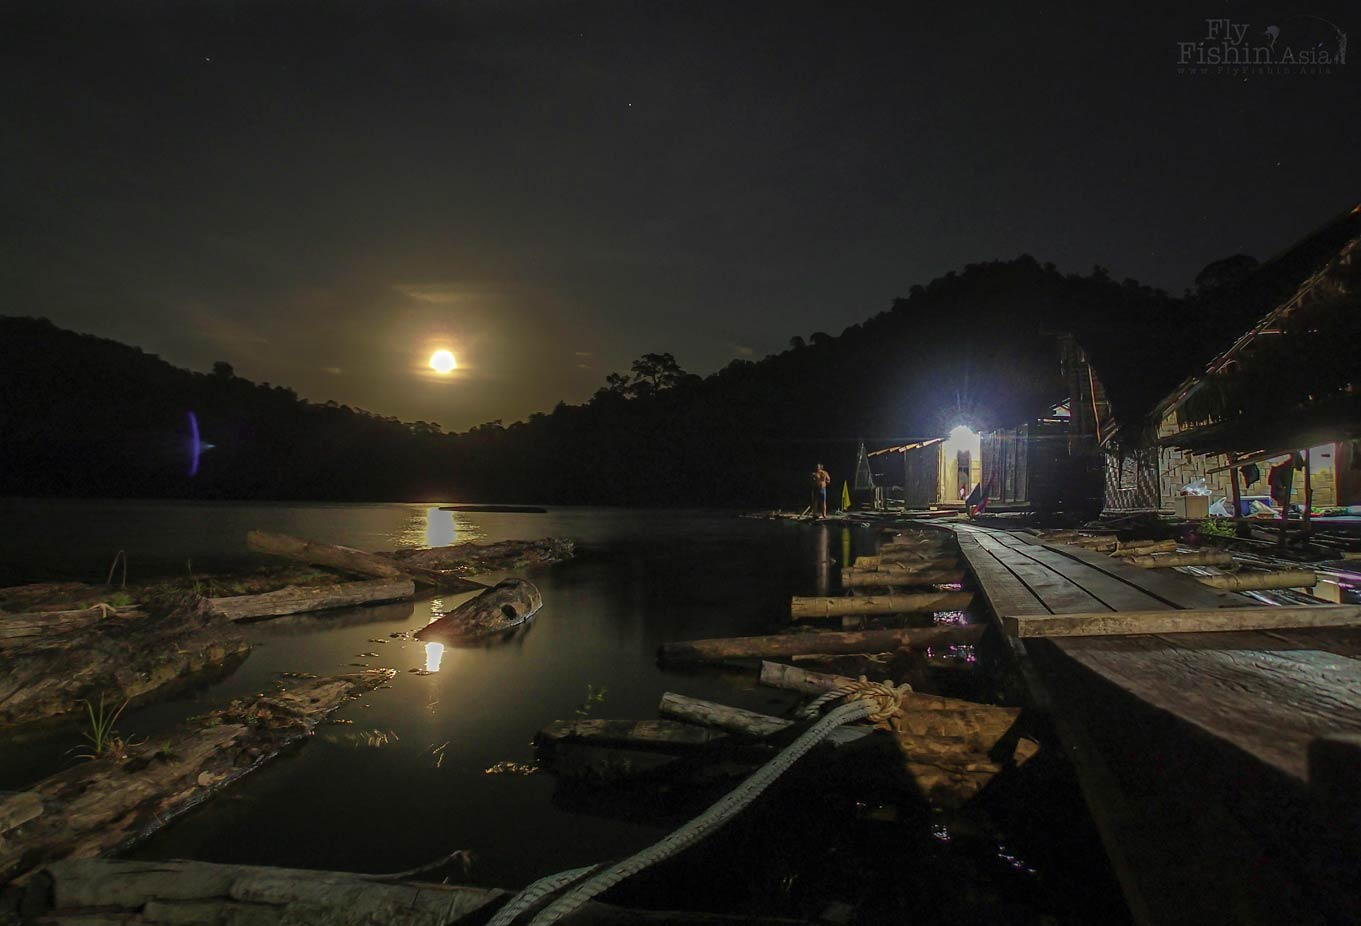 Night scene at the floating raft house